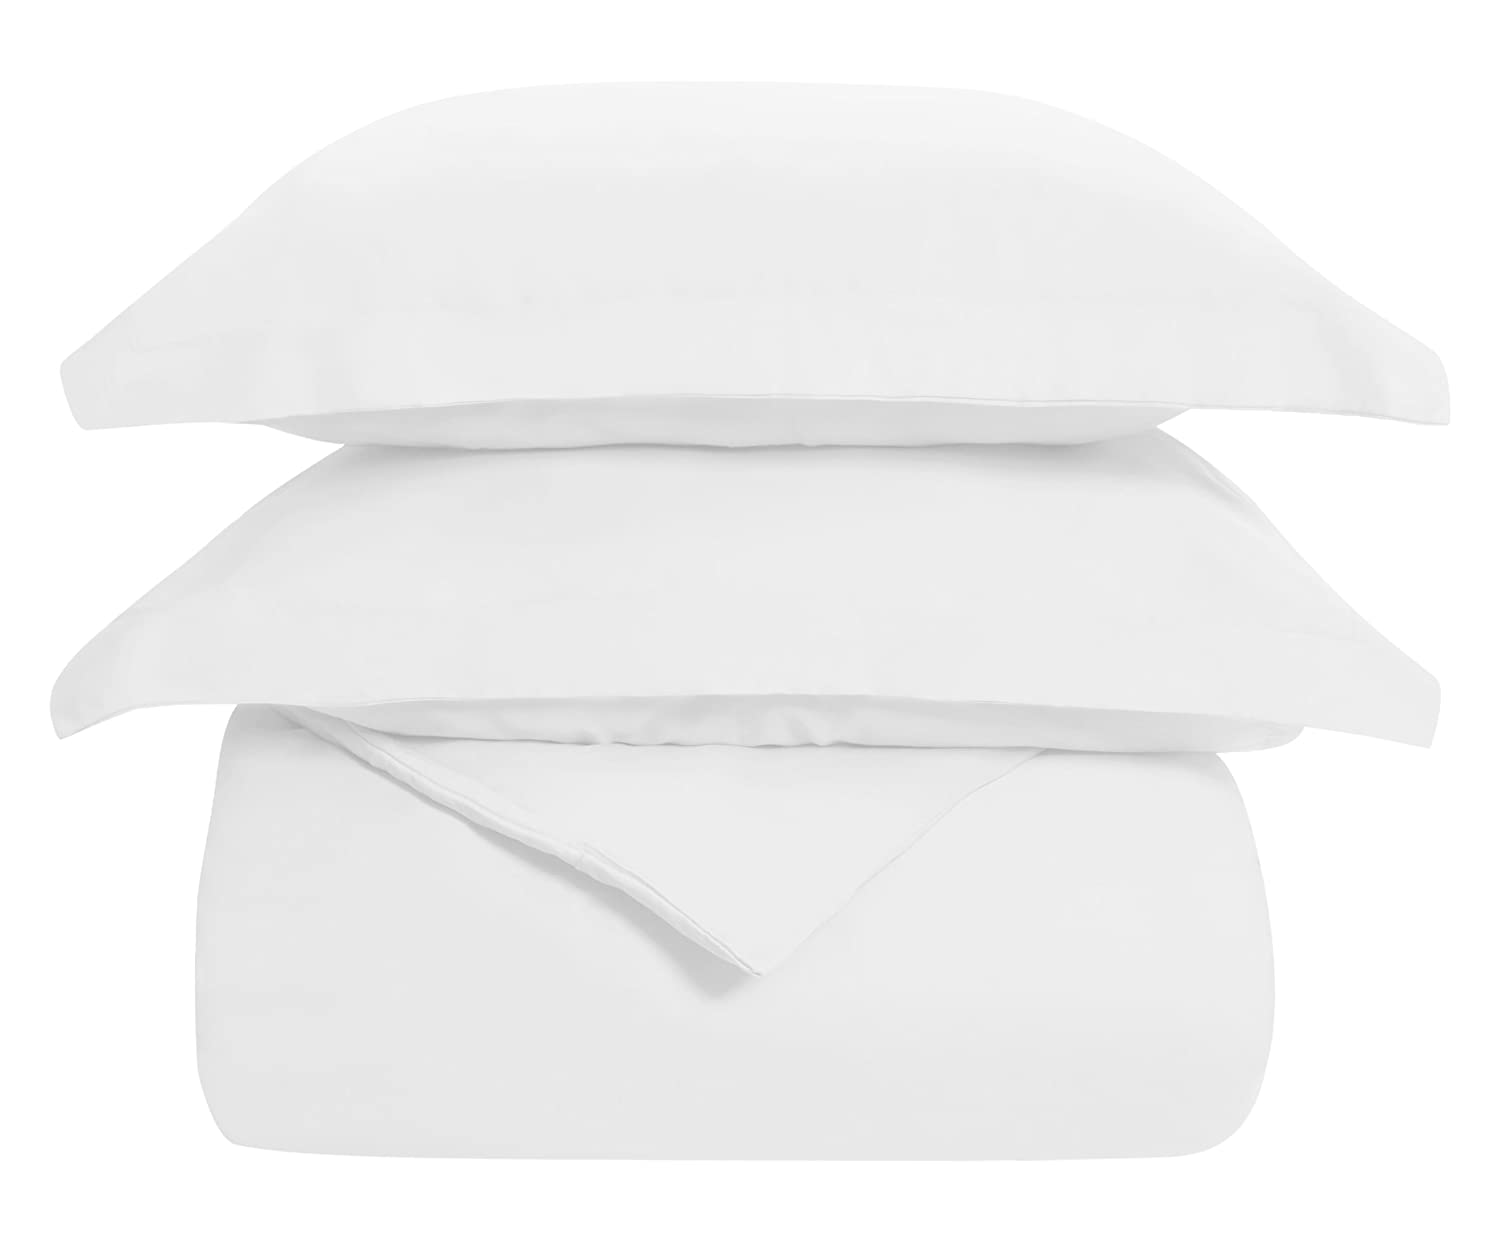 (Twin, White) Superior 100% Cotton, 300 Thread Count Wrinkle Resistant, Easy-Care 2-Piece Twin Duvet Cover Set, White B01N3Q9OIB ツイン|ホワイト ホワイト ツイン